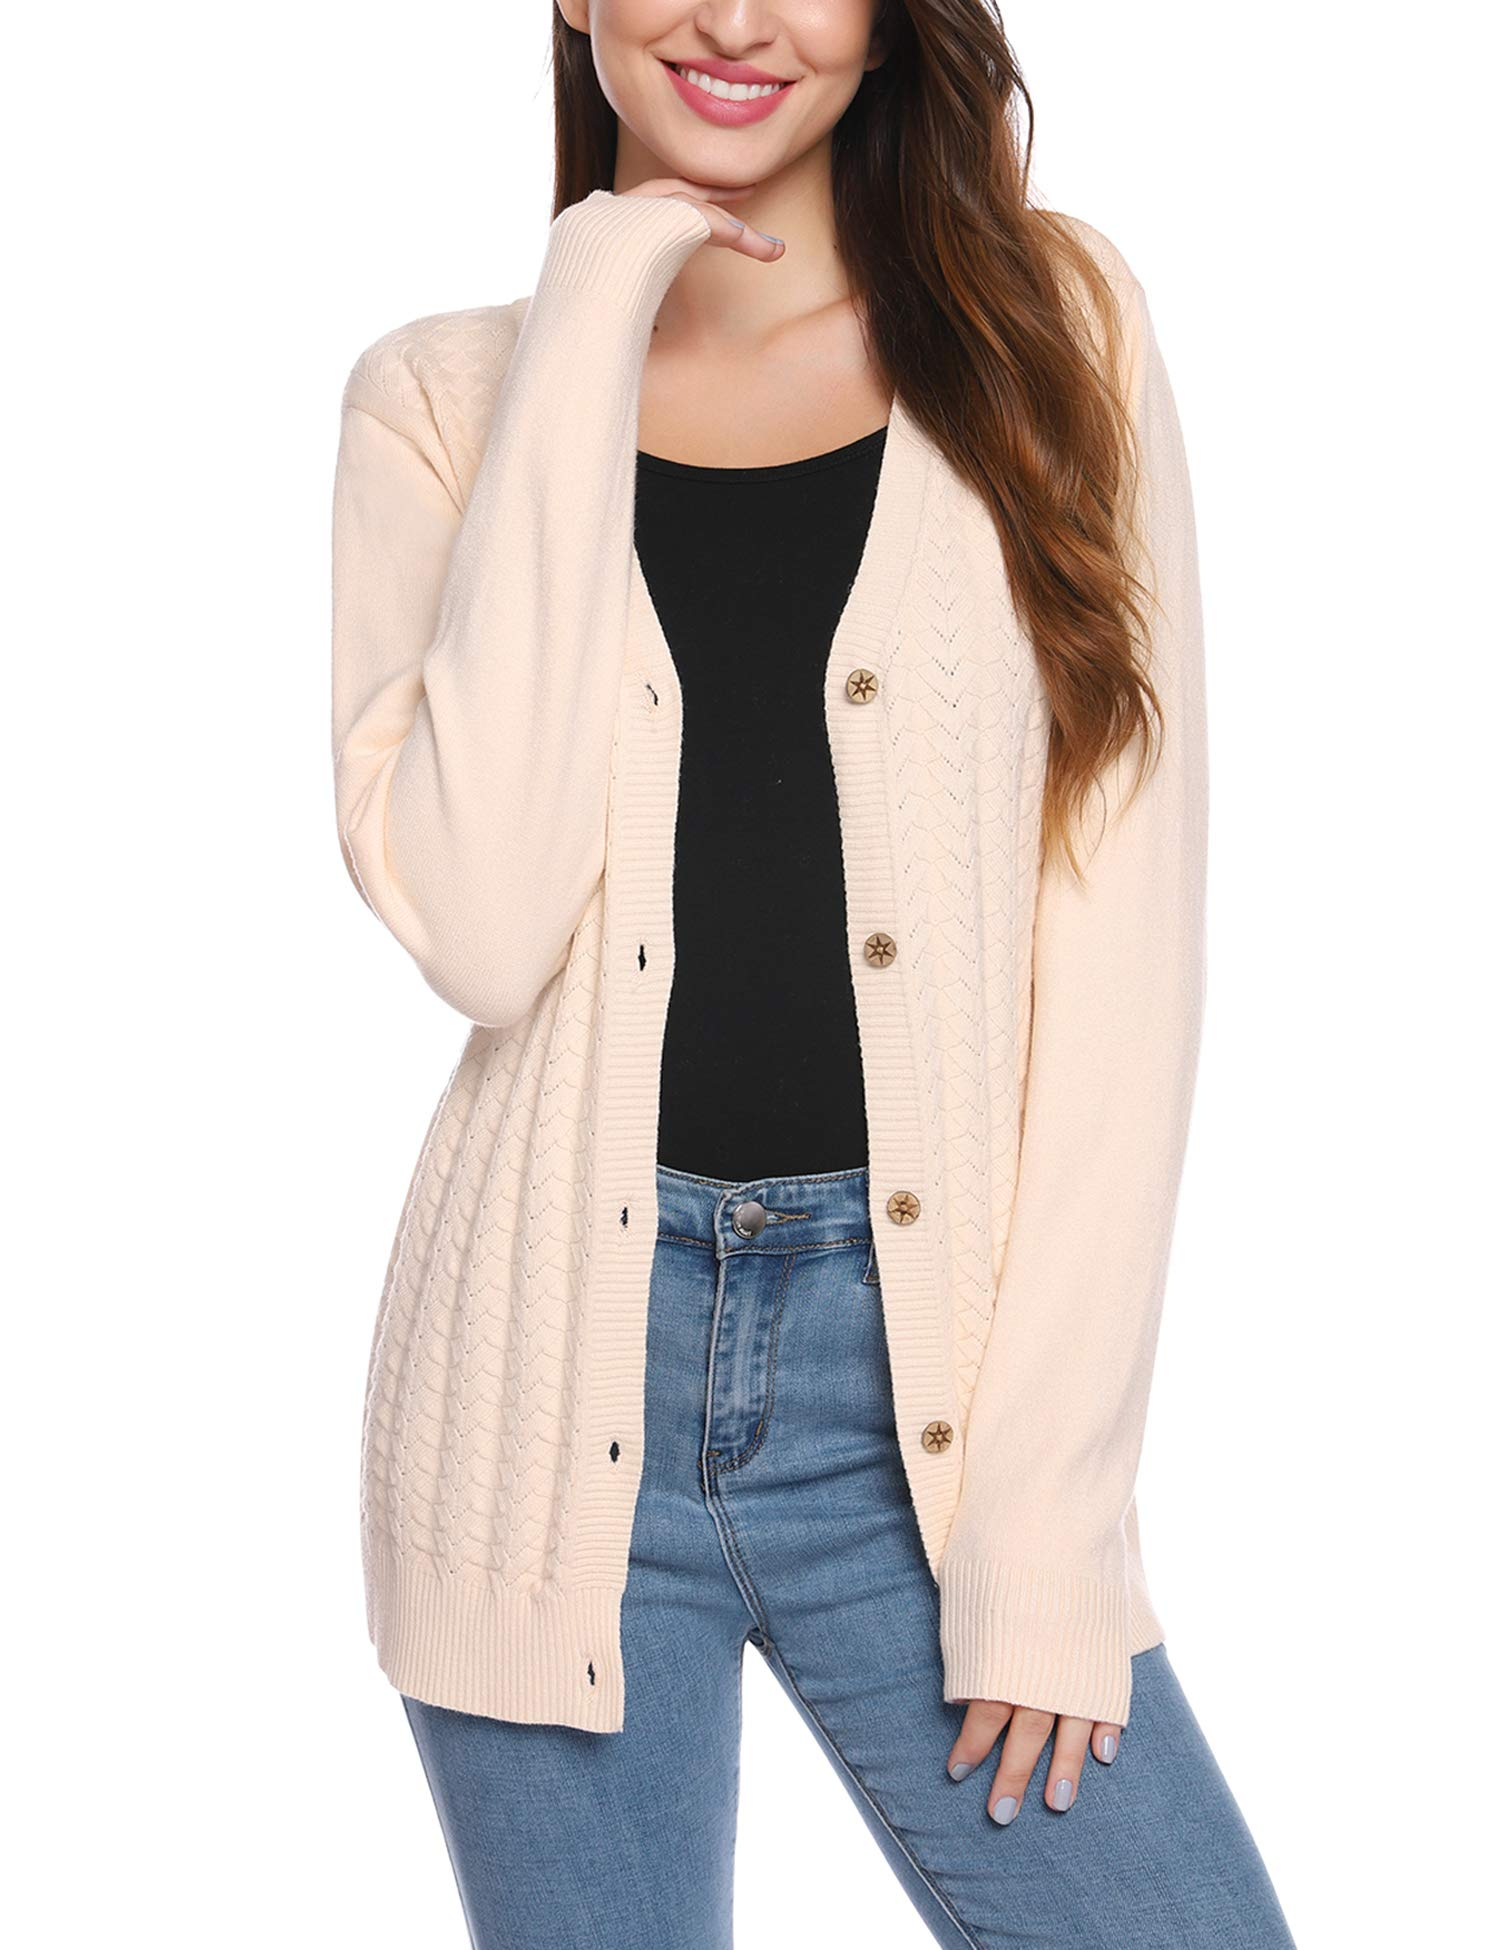 iClosam Women Long Sleeve V-Neck Button Down Thick Knit Cardigan Sweater